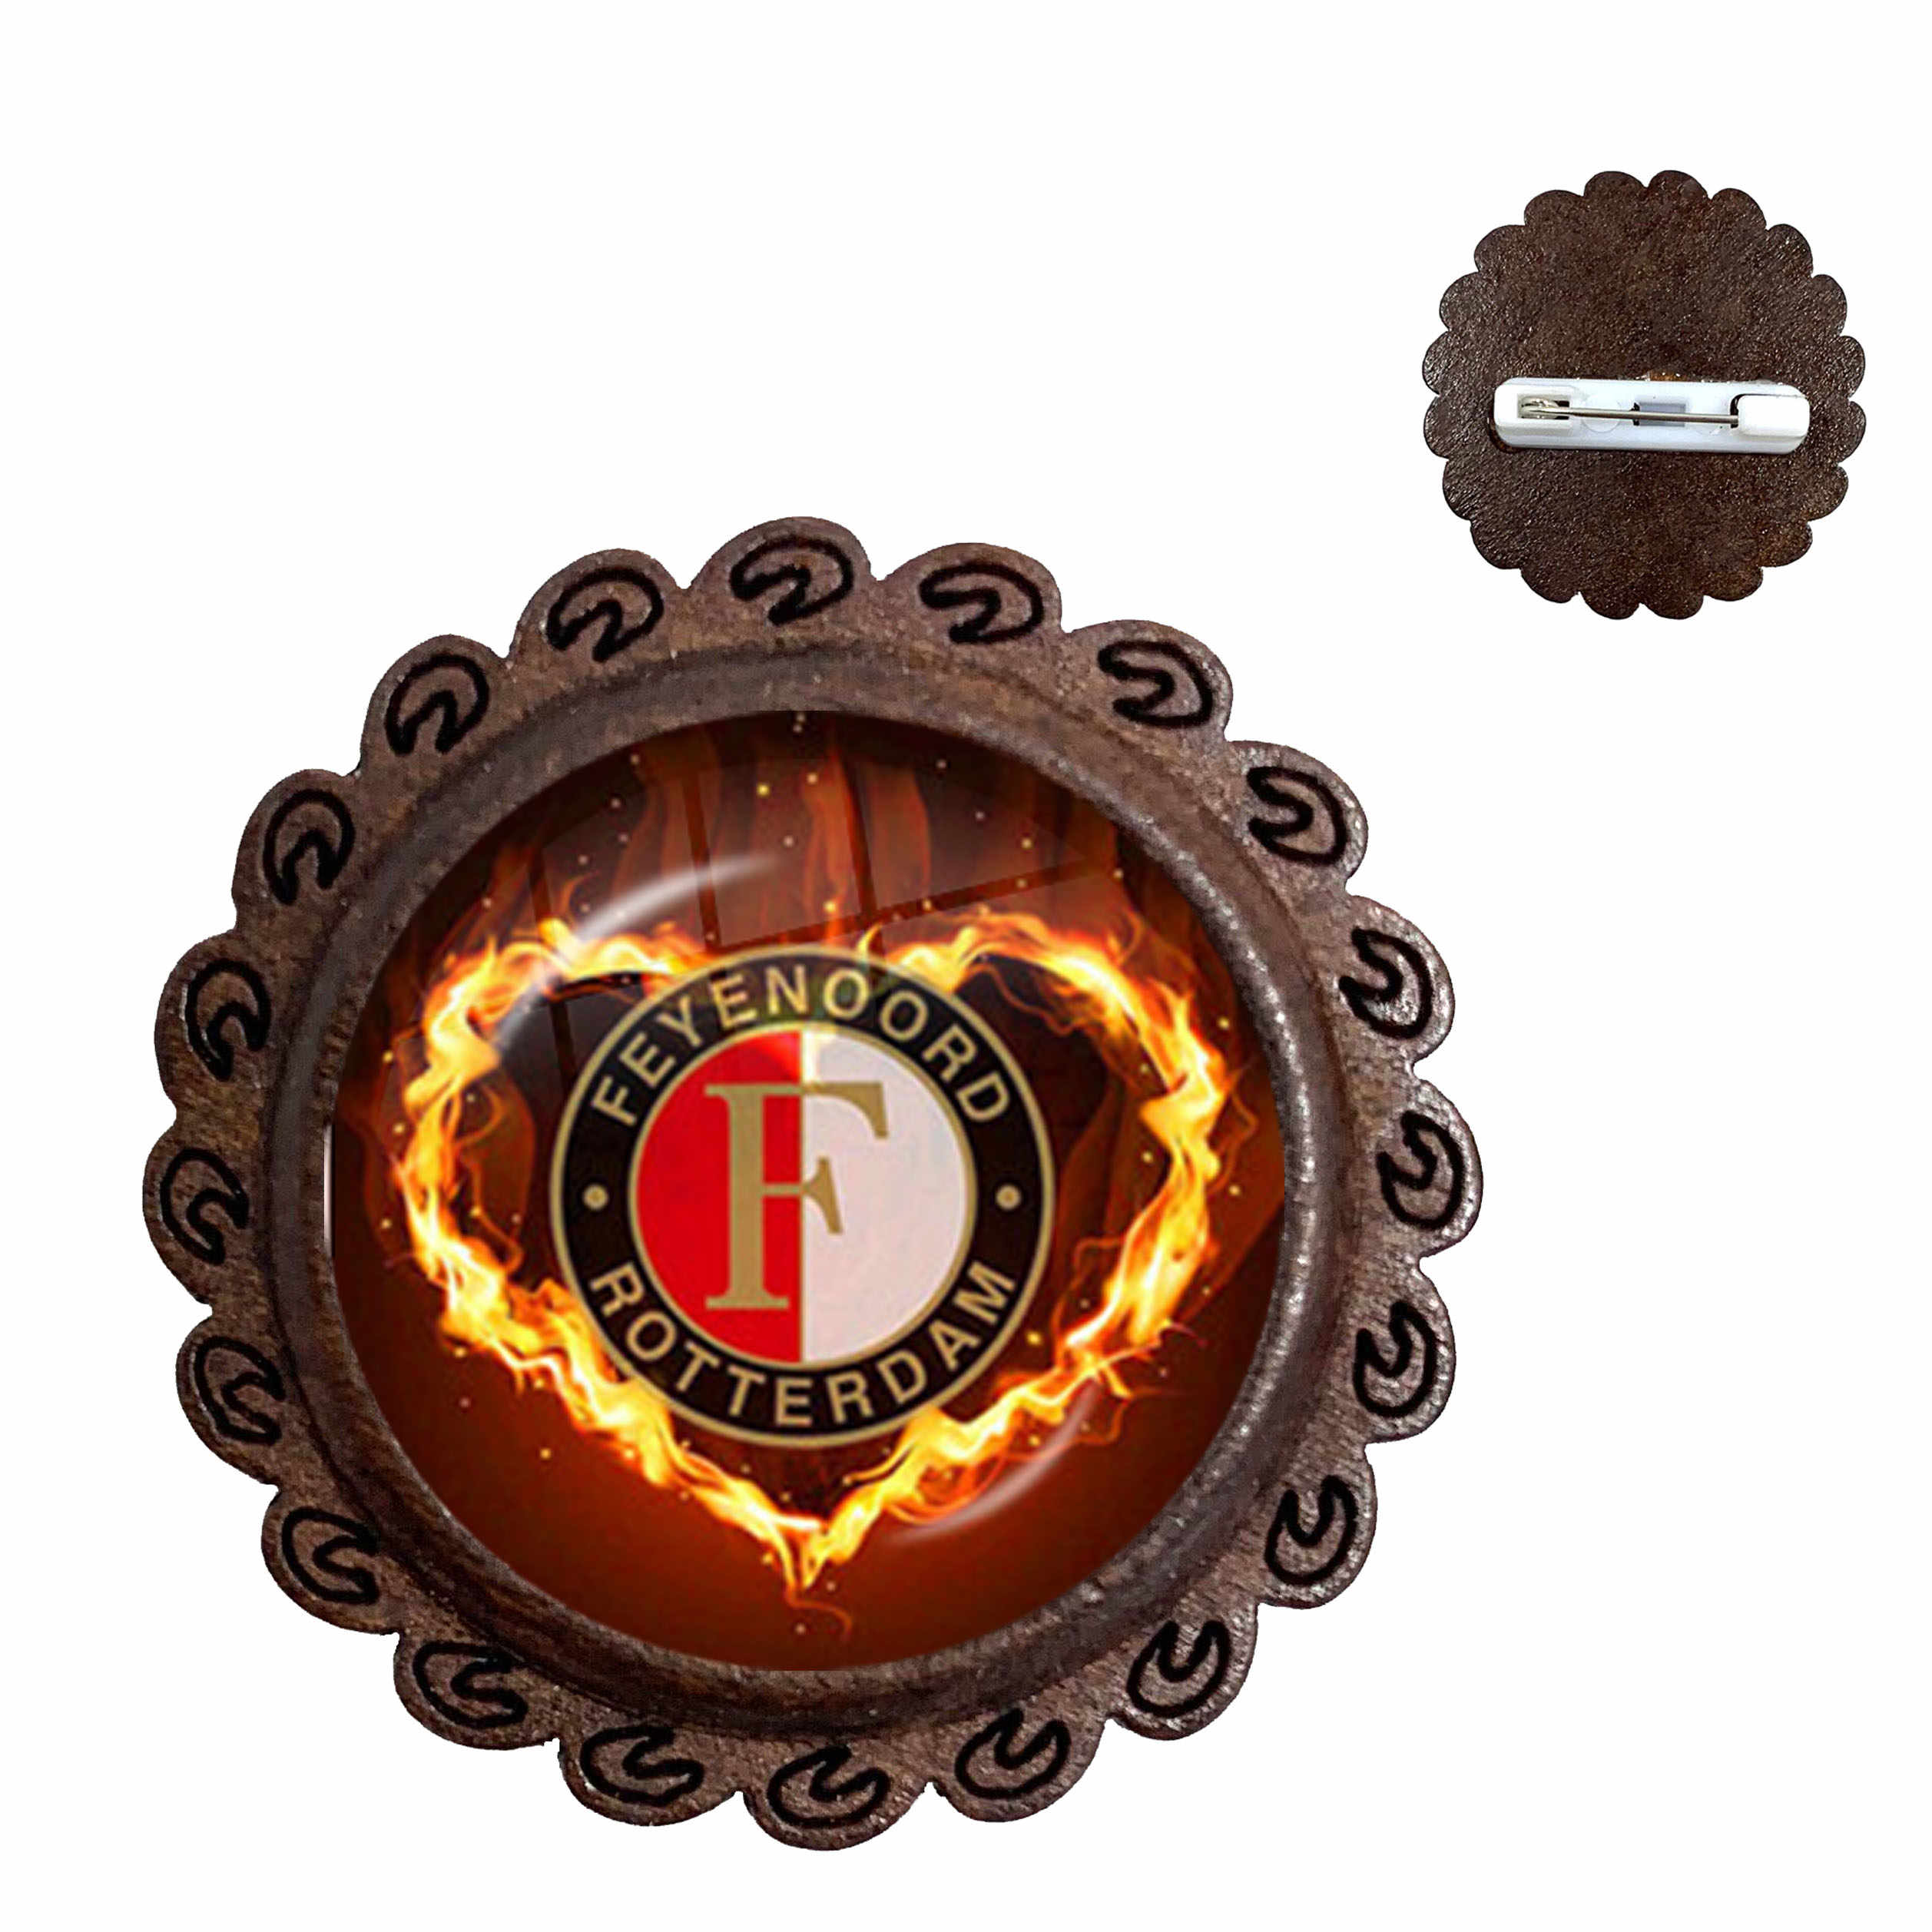 Feyenoord Football Club Glass Cabochon Brooches Feyenoord Rotterdam Football Leagues Logo Soccer Club Collar Pins For Fans Gift